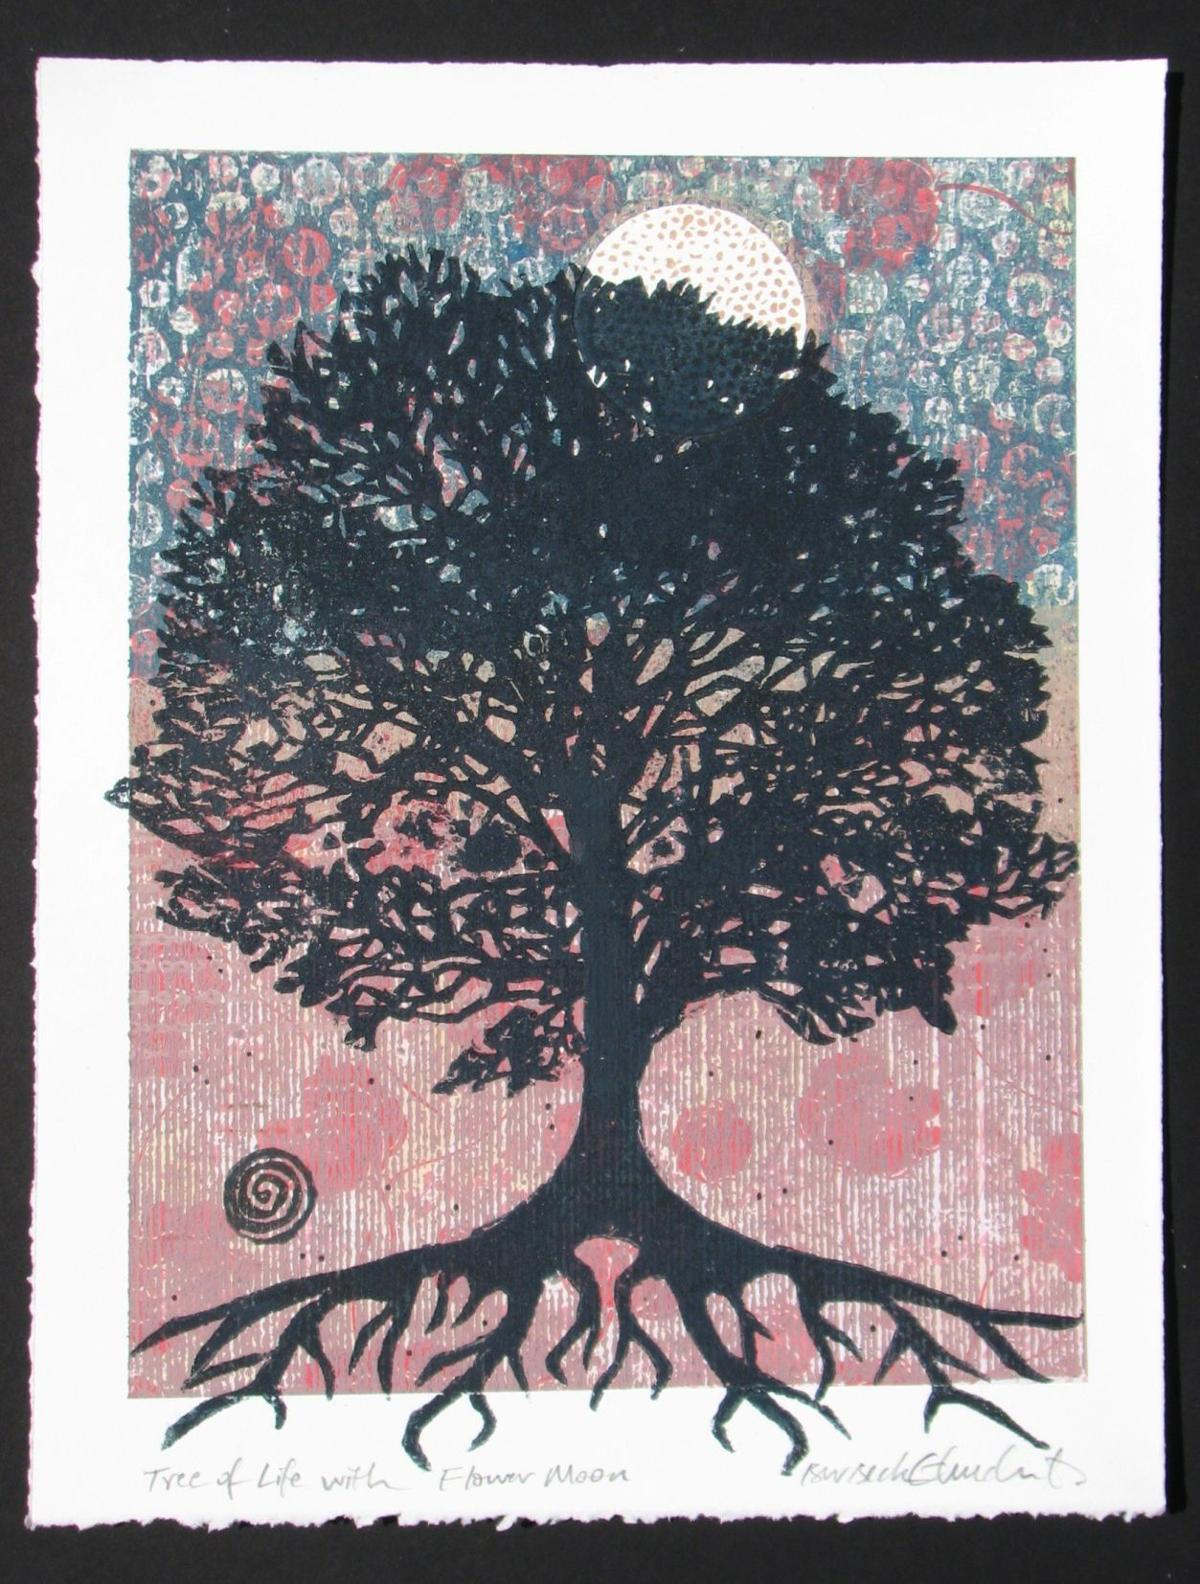 Tree of Life with Flower Moon